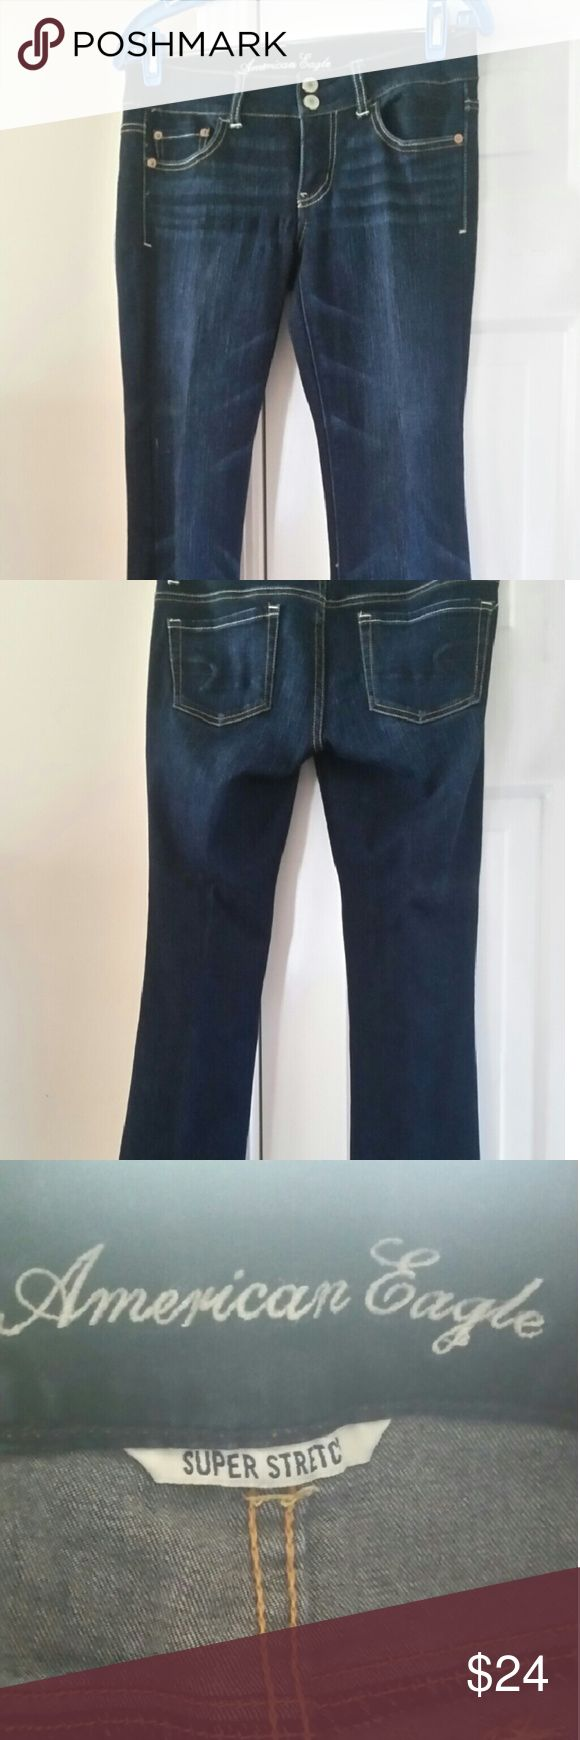 American Eagle jeans**MAKE OFFER** New Ameican Eagle jeans super stretch Artist. Offers welcome!! American Eagle Outfitters Jeans